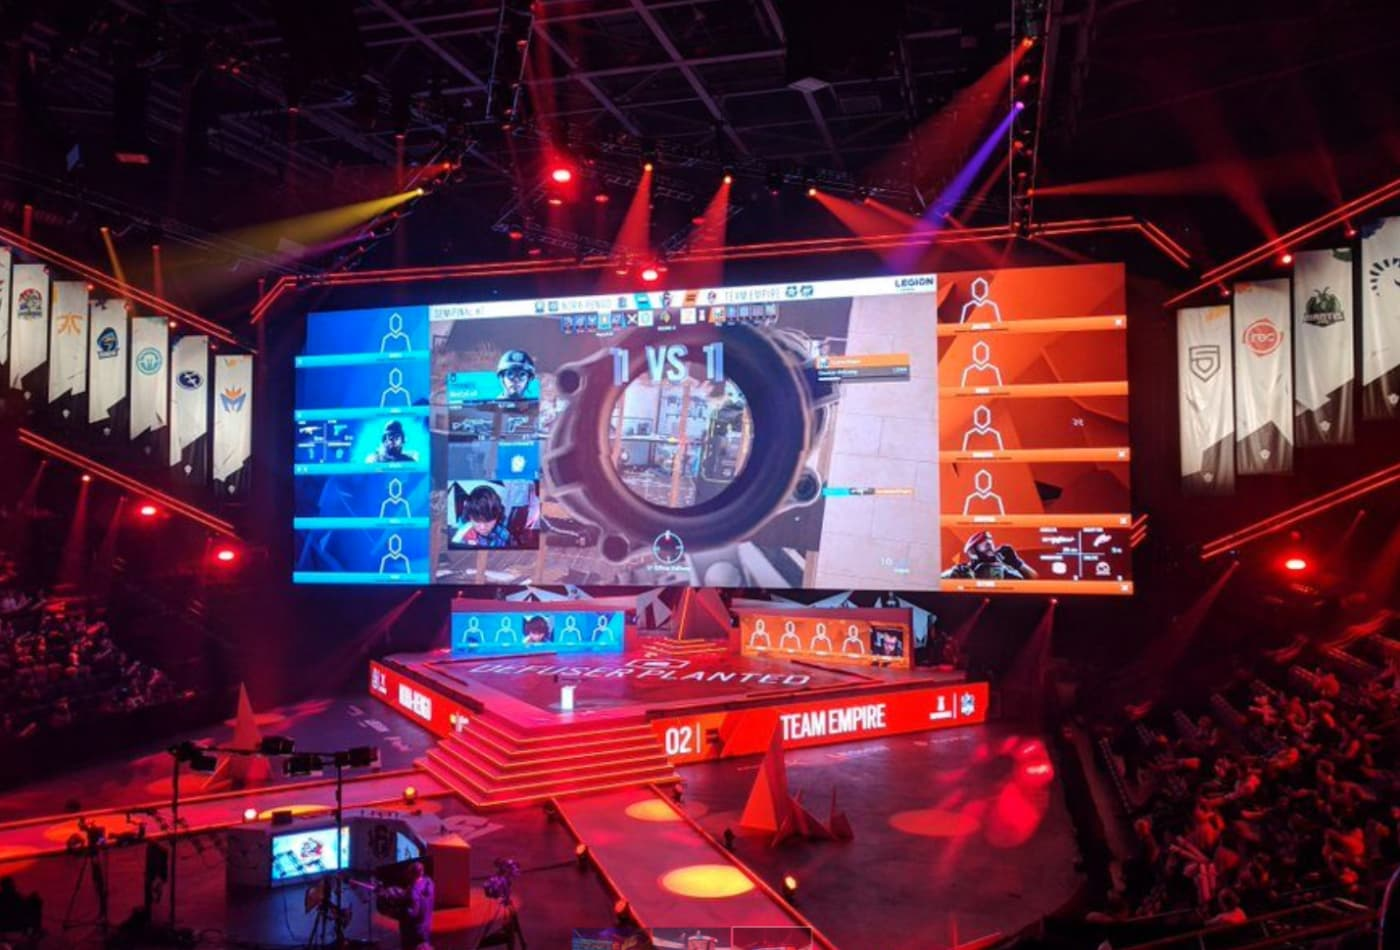 Ubisoft's $3 million tournament shows why game publishers are betting big on esports